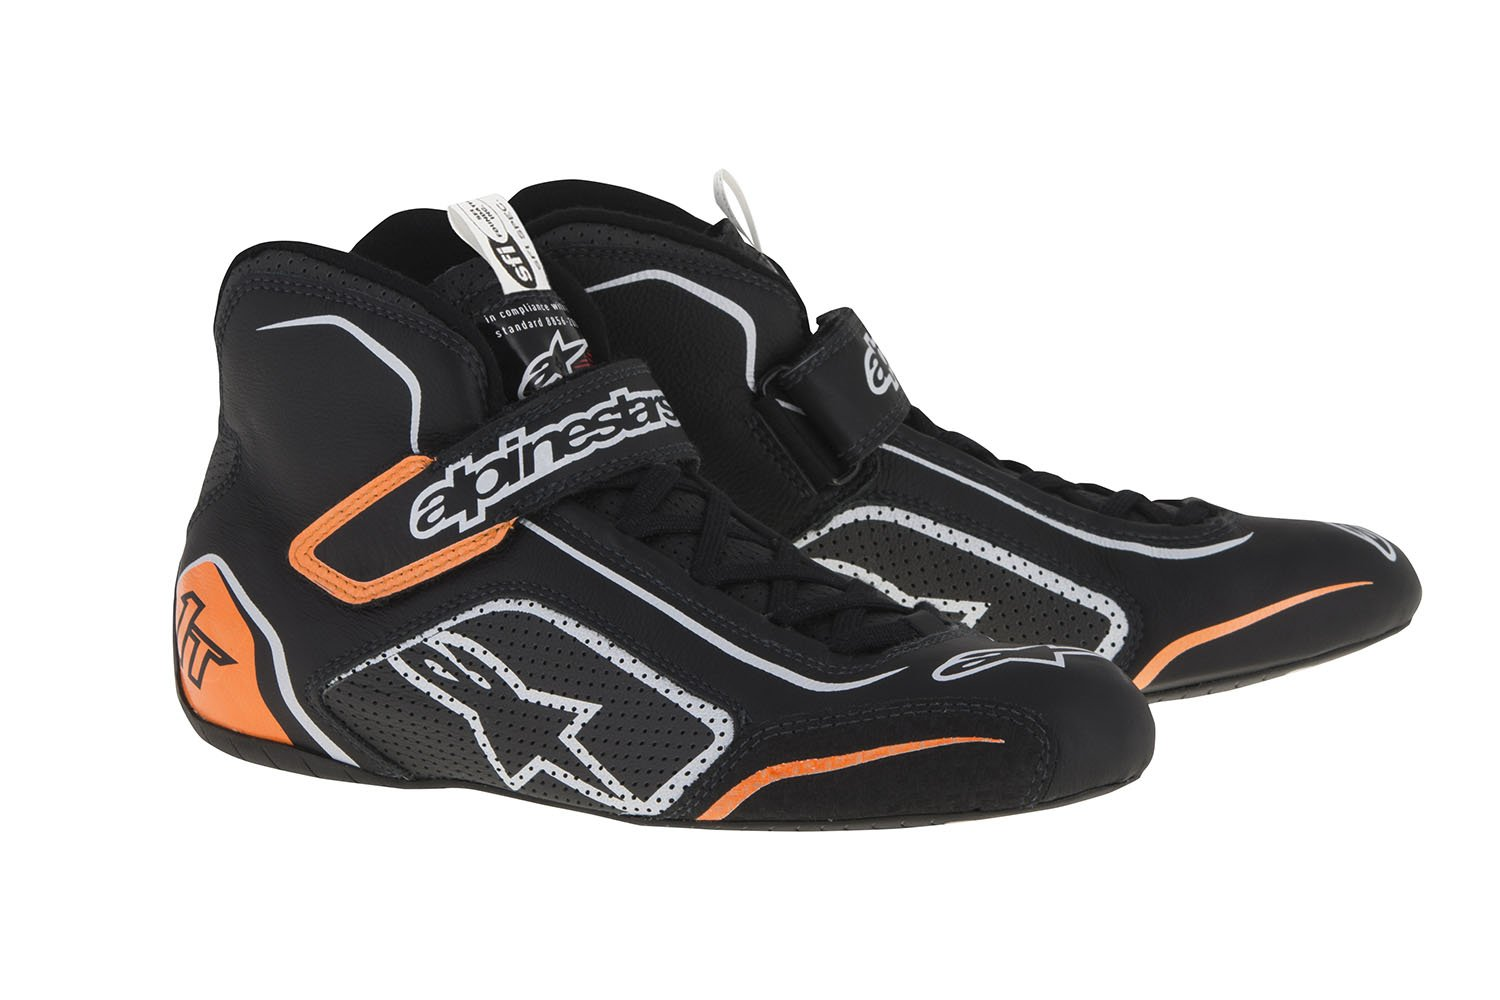 Amazon.com: Alpinestars 2710115-1519-10 Tech 1-T Shoes, Black/Fluor Yellow, Size 10, SFI 3.3 Level 5/FIA, Full-Grain Leather: Automotive